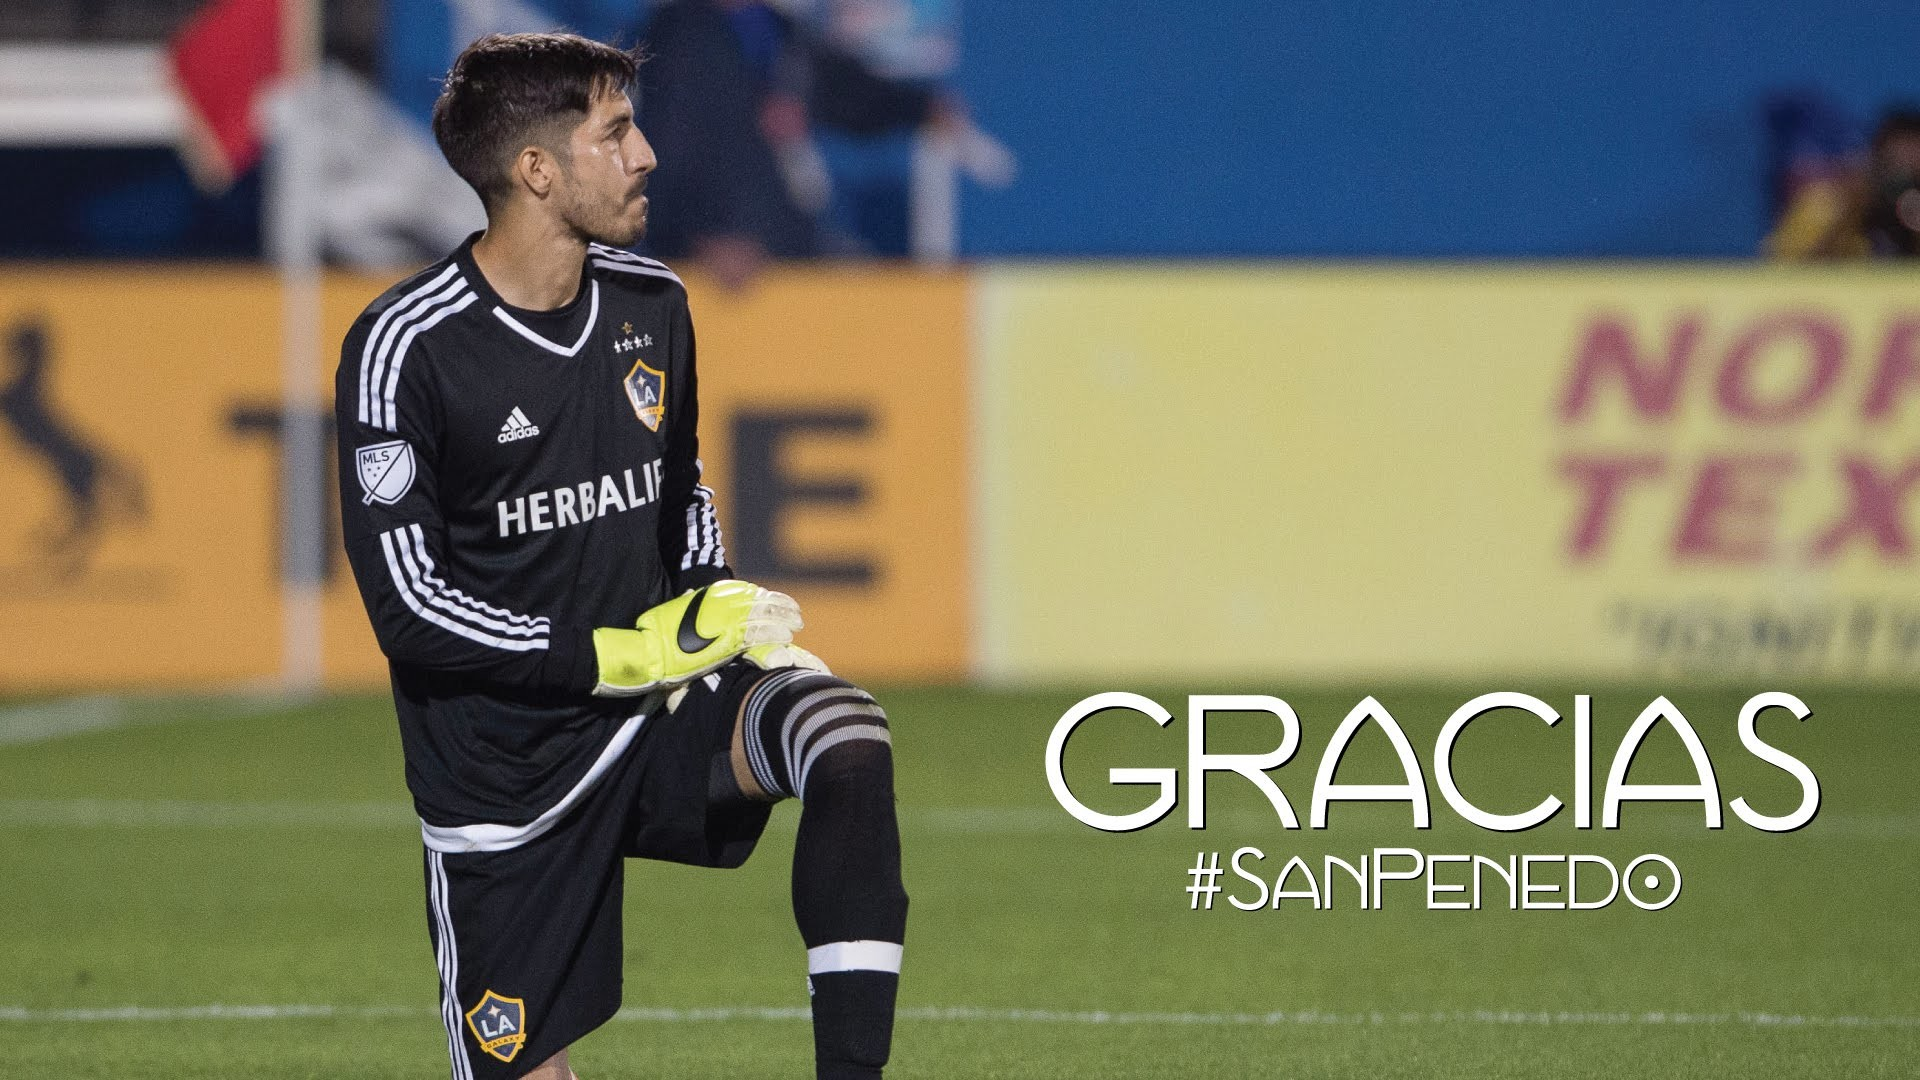 Res: 1920x1080, The BEST HIGHLIGHTS of goalkeeper Jaime Penedo for the LA Galaxy | Gracias  #SanPenedo - YouTube